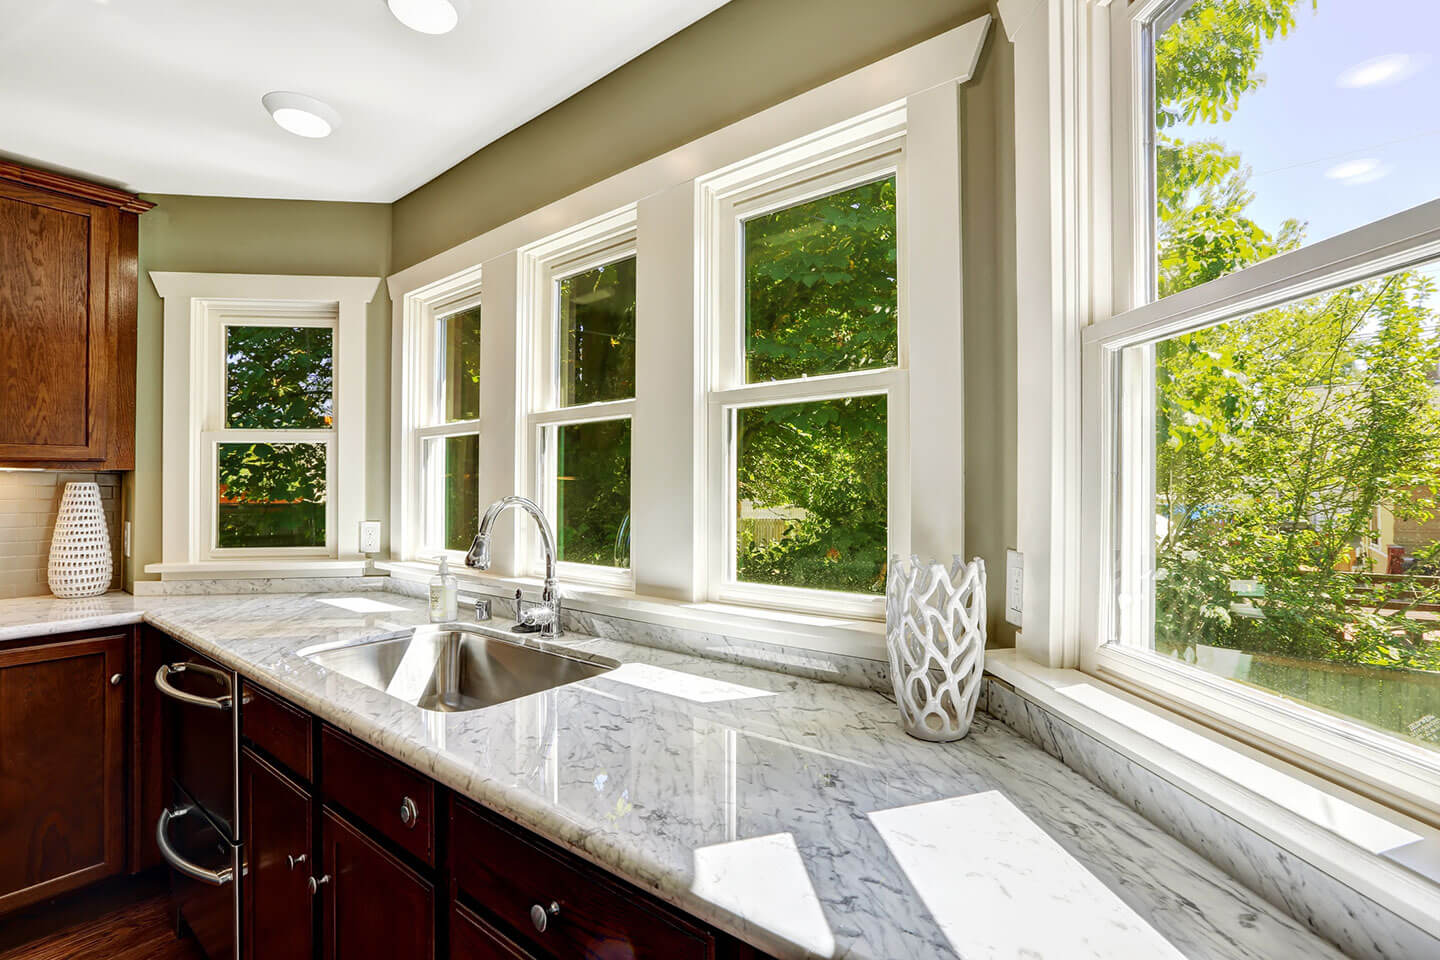 energy efficient windows cost decor cost of energy efficient windows energy efficient windows savings costs modernize